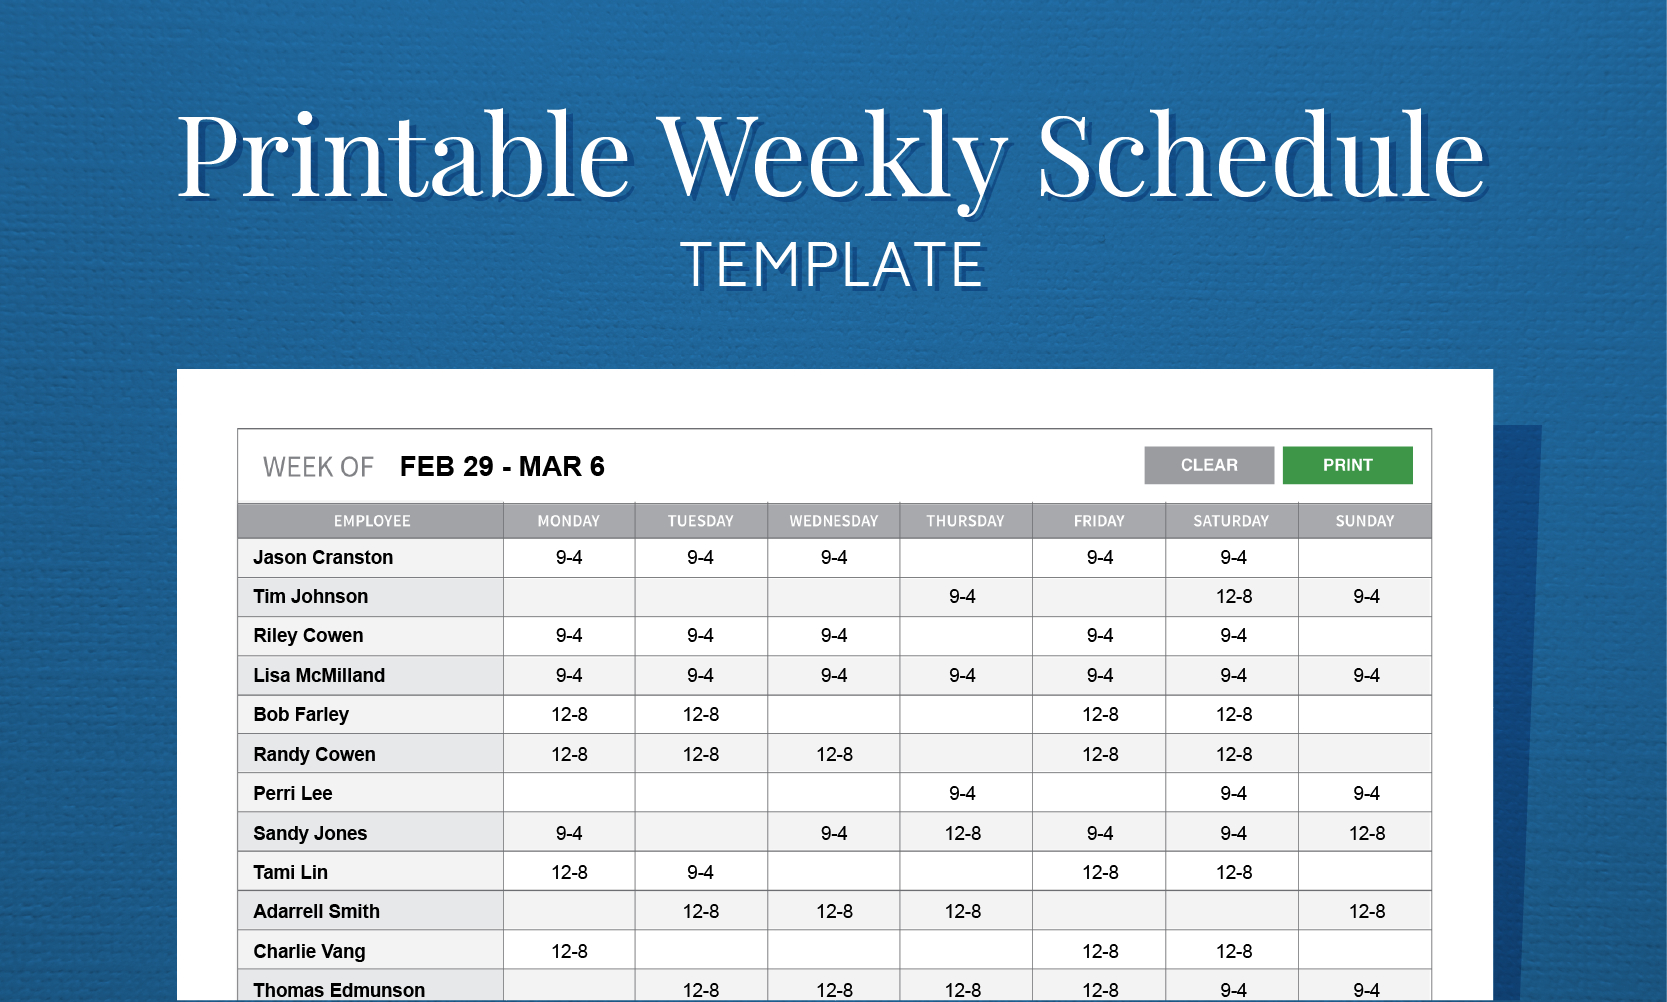 Rota Spreadsheet Template Throughout Free Printable Weekly Work Schedule Template For Employee Scheduling